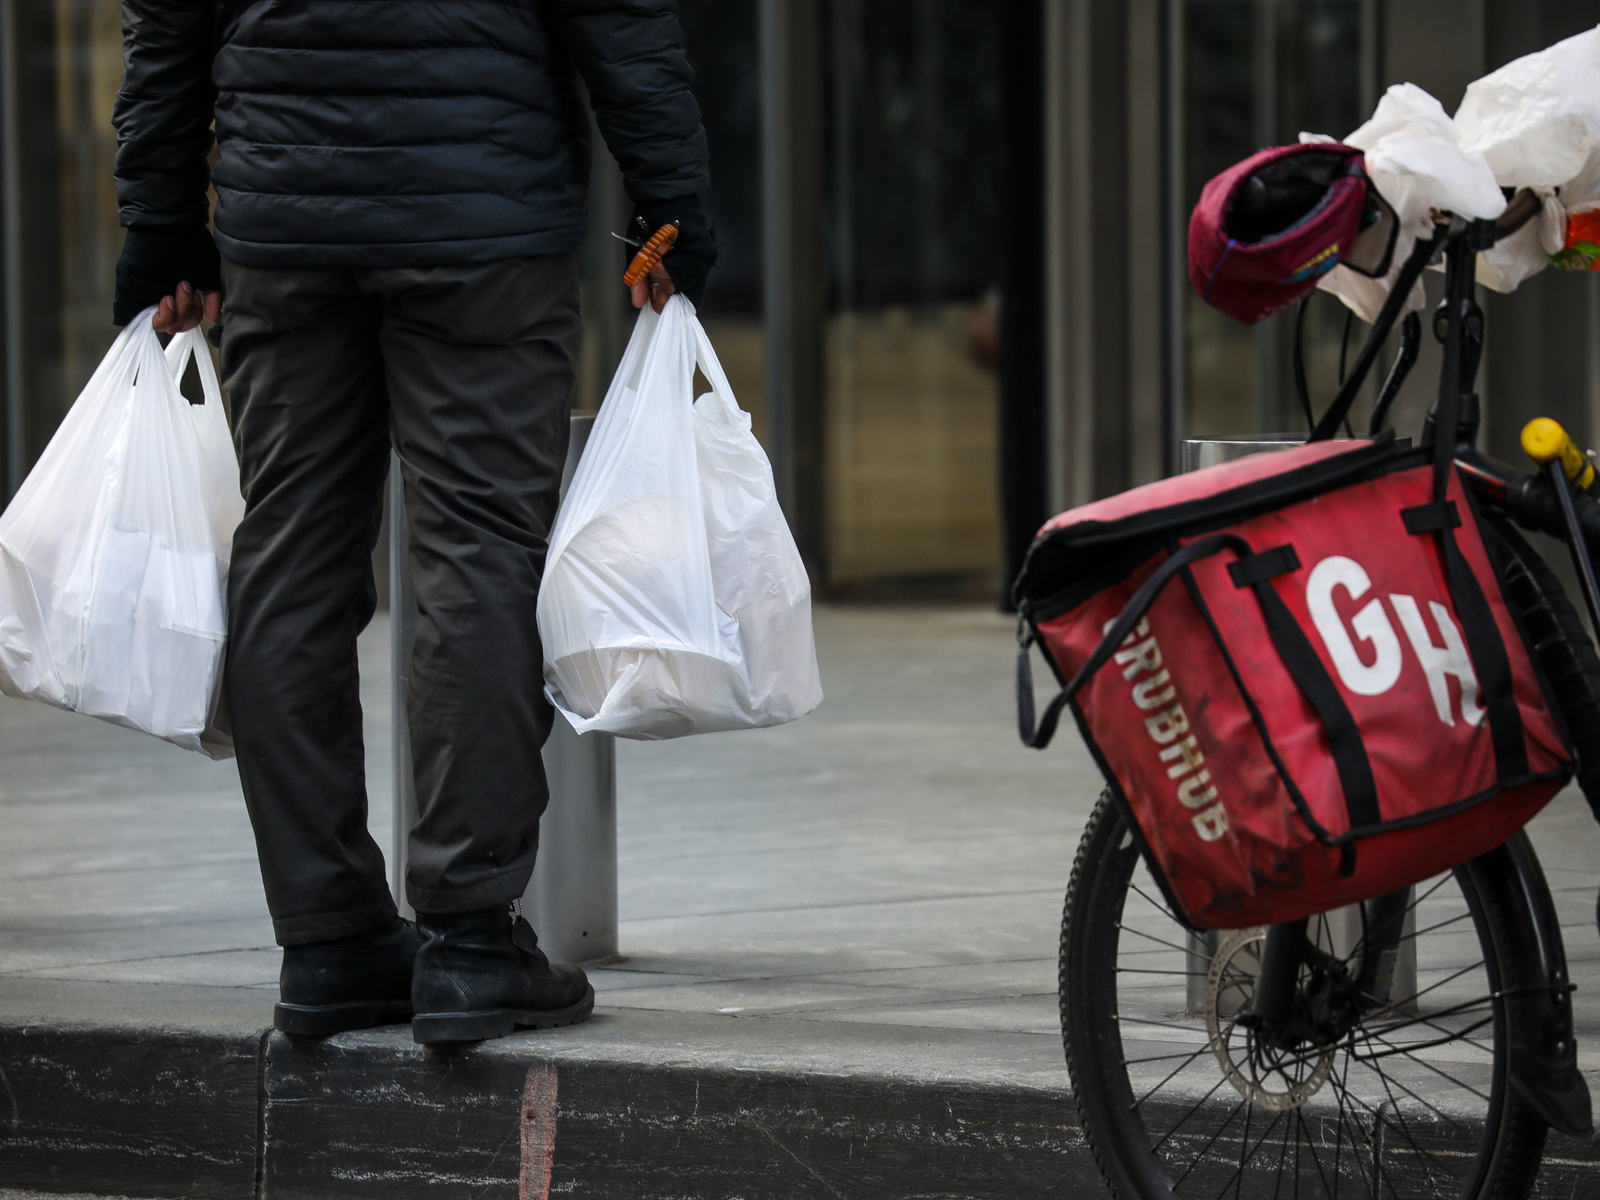 NYC Council Holds 'First in the Nation' Hearing on the Impact of Restaurant Delivery Services